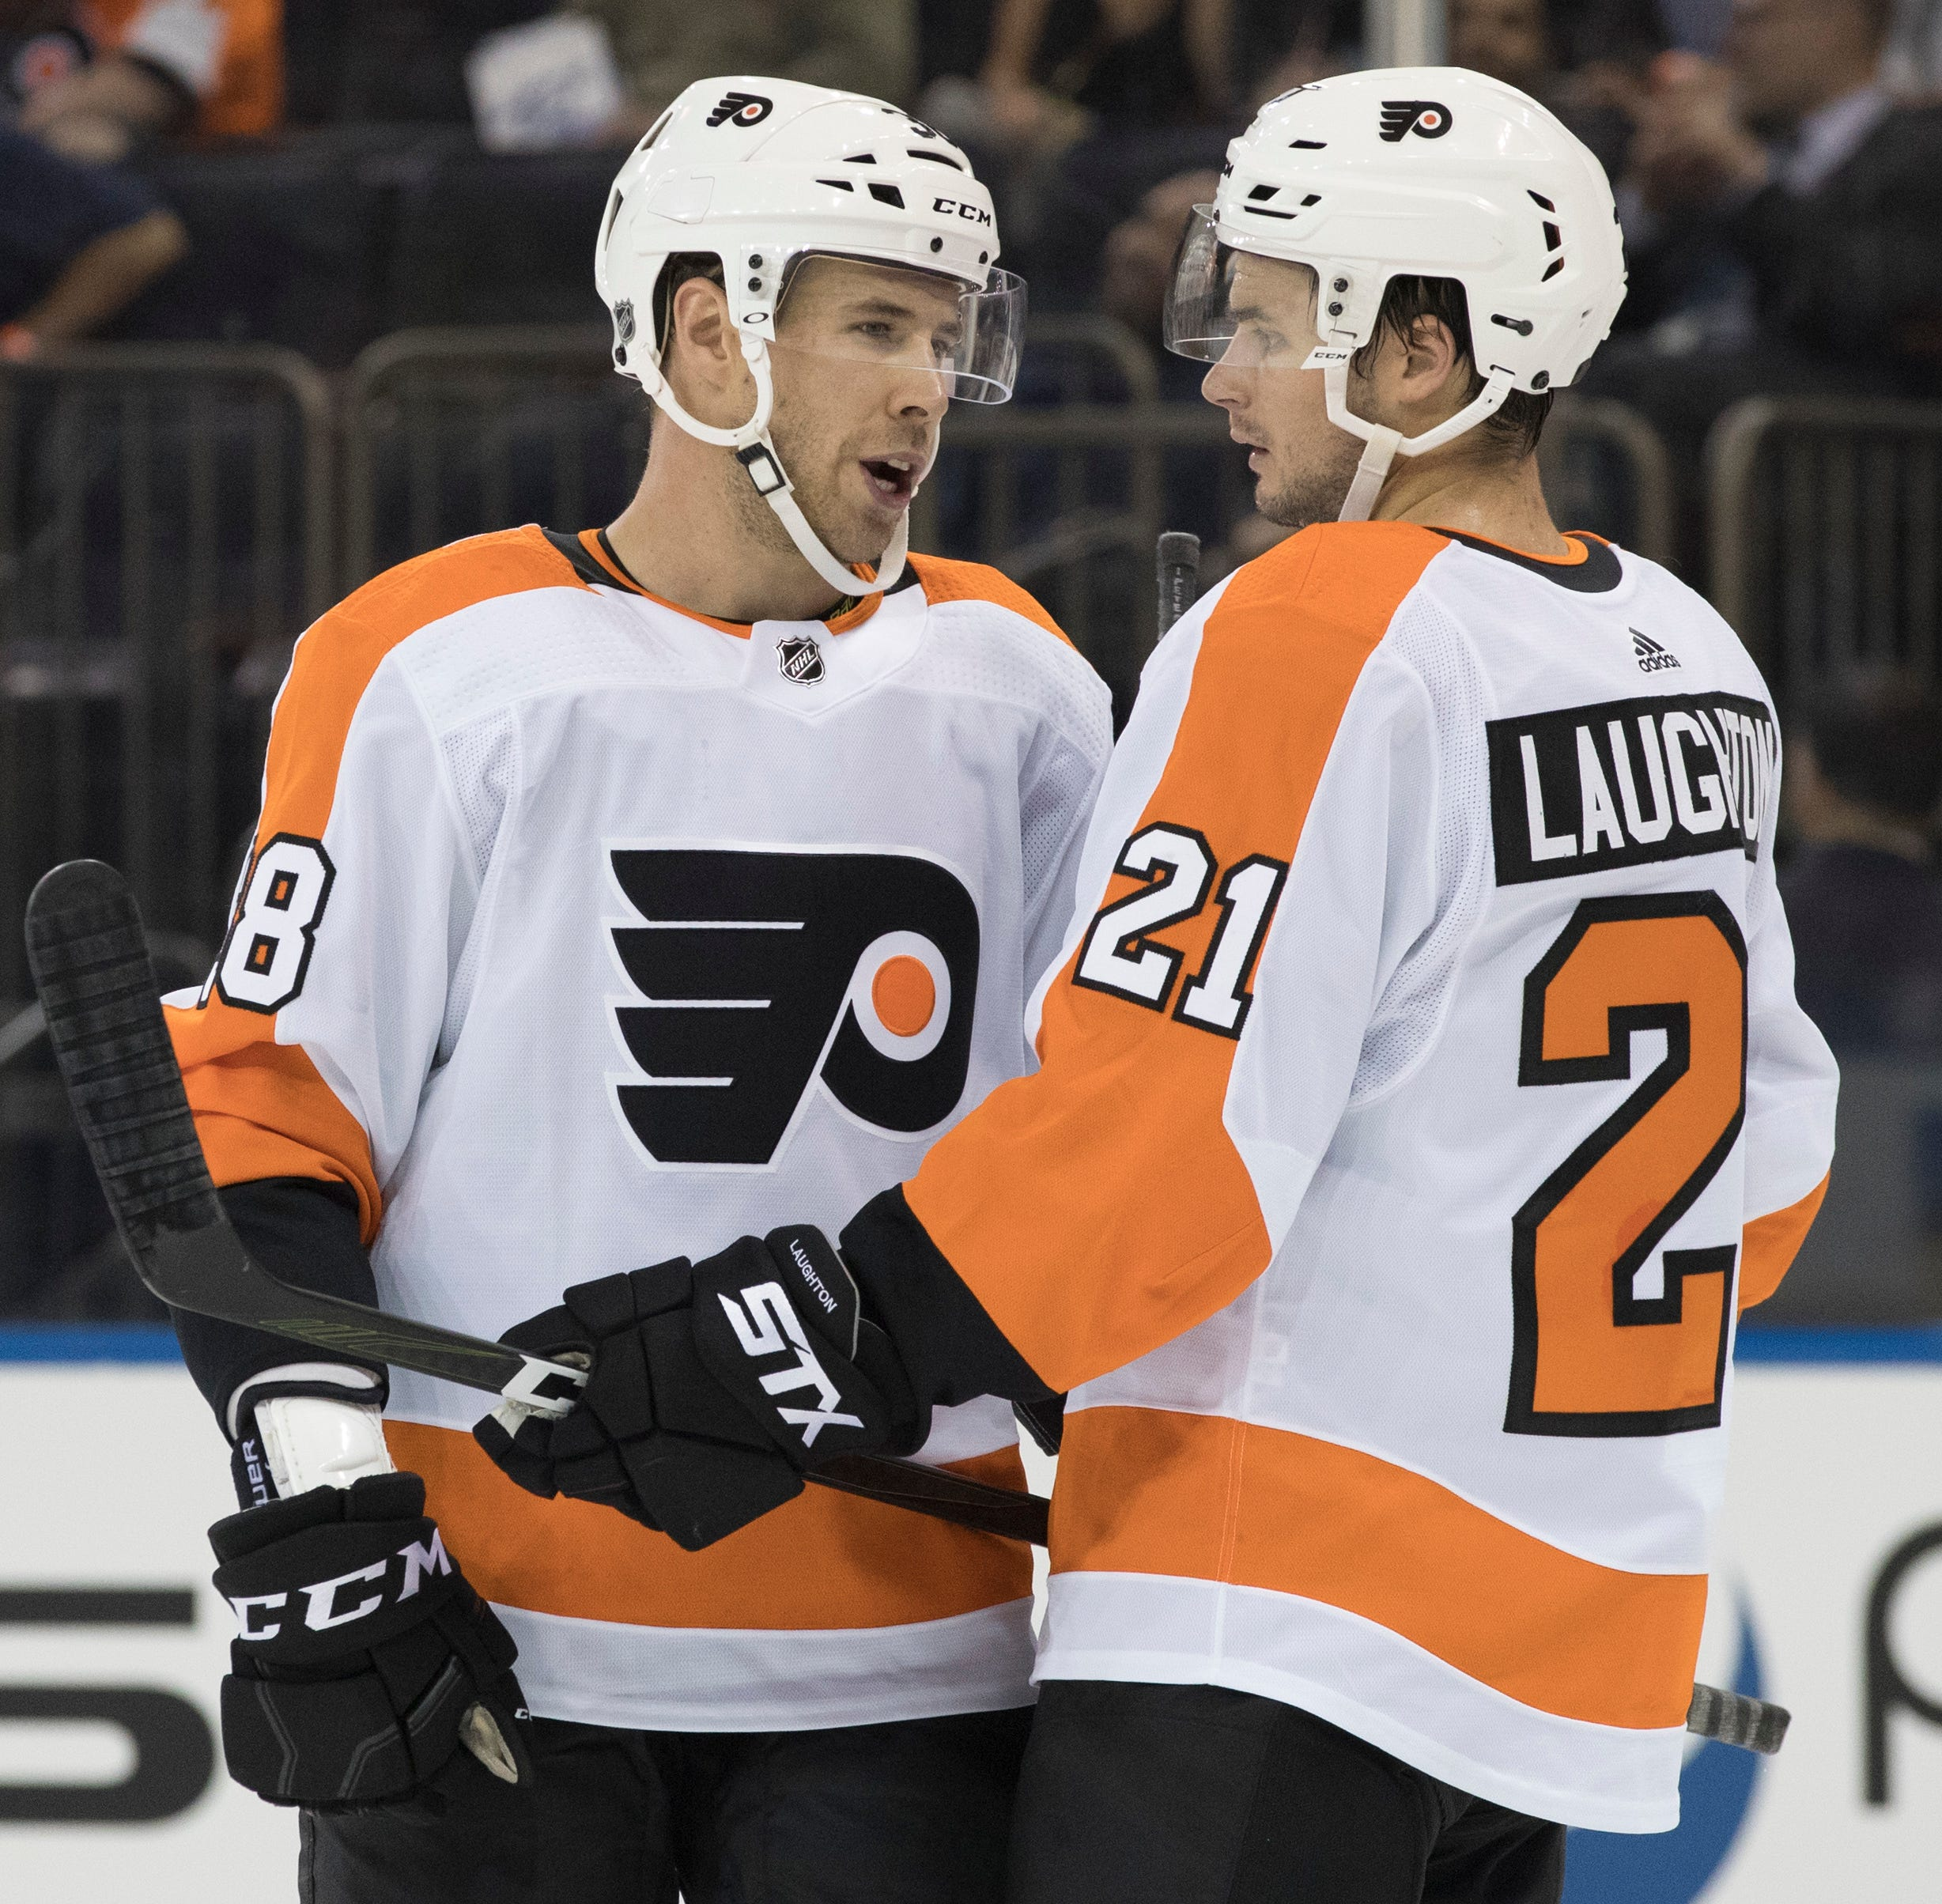 Corban Knight on the bubble of making Flyers after two-year NHL absence